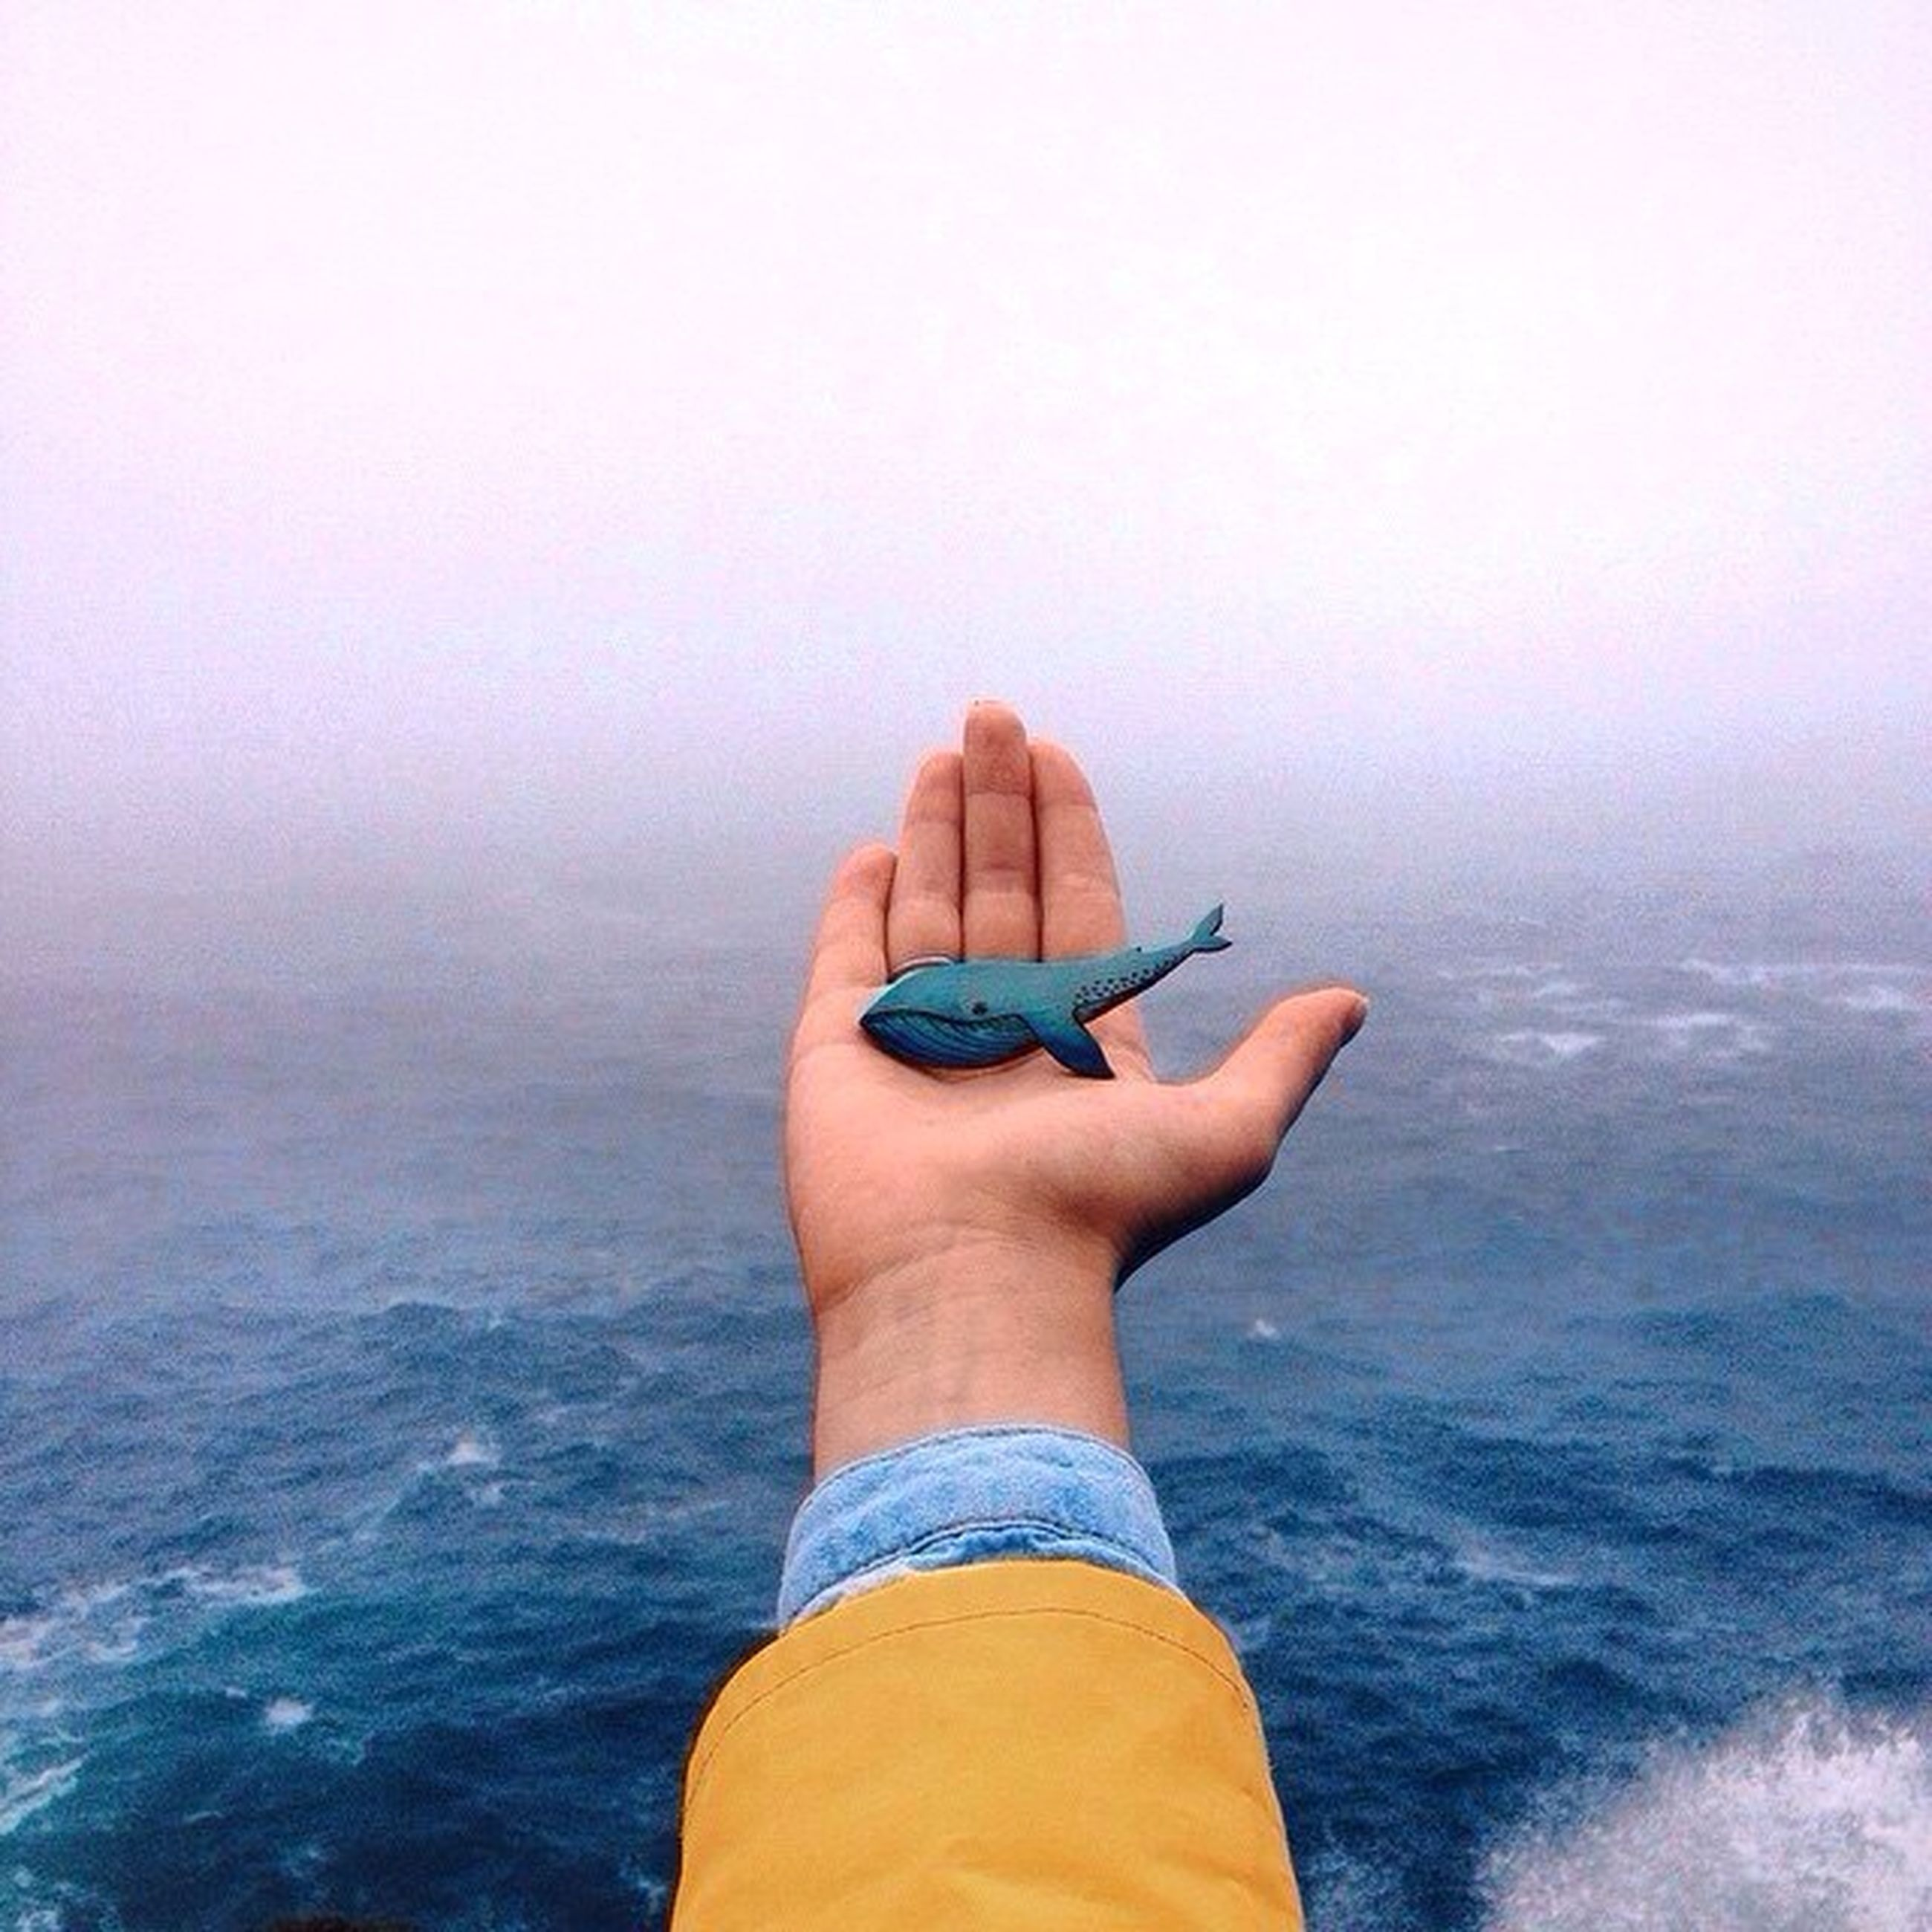 holding, person, sea, water, part of, lifestyles, cropped, leisure activity, human finger, personal perspective, men, sky, horizon over water, unrecognizable person, copy space, nature, one man only